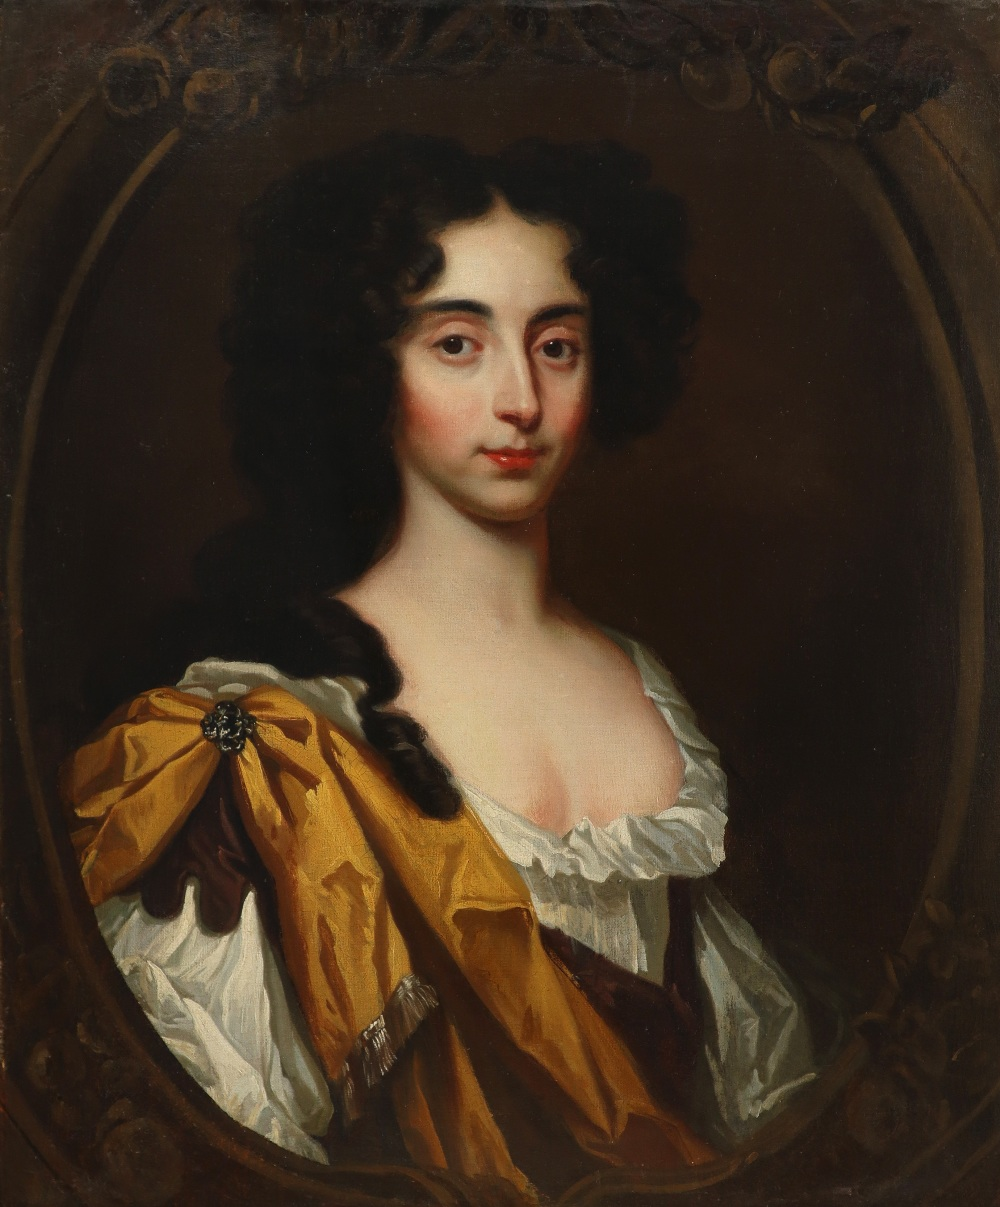 Circle of Mary Beale Portrait of Henrietta Walker, half-length, wearing a gold wrap in a painted